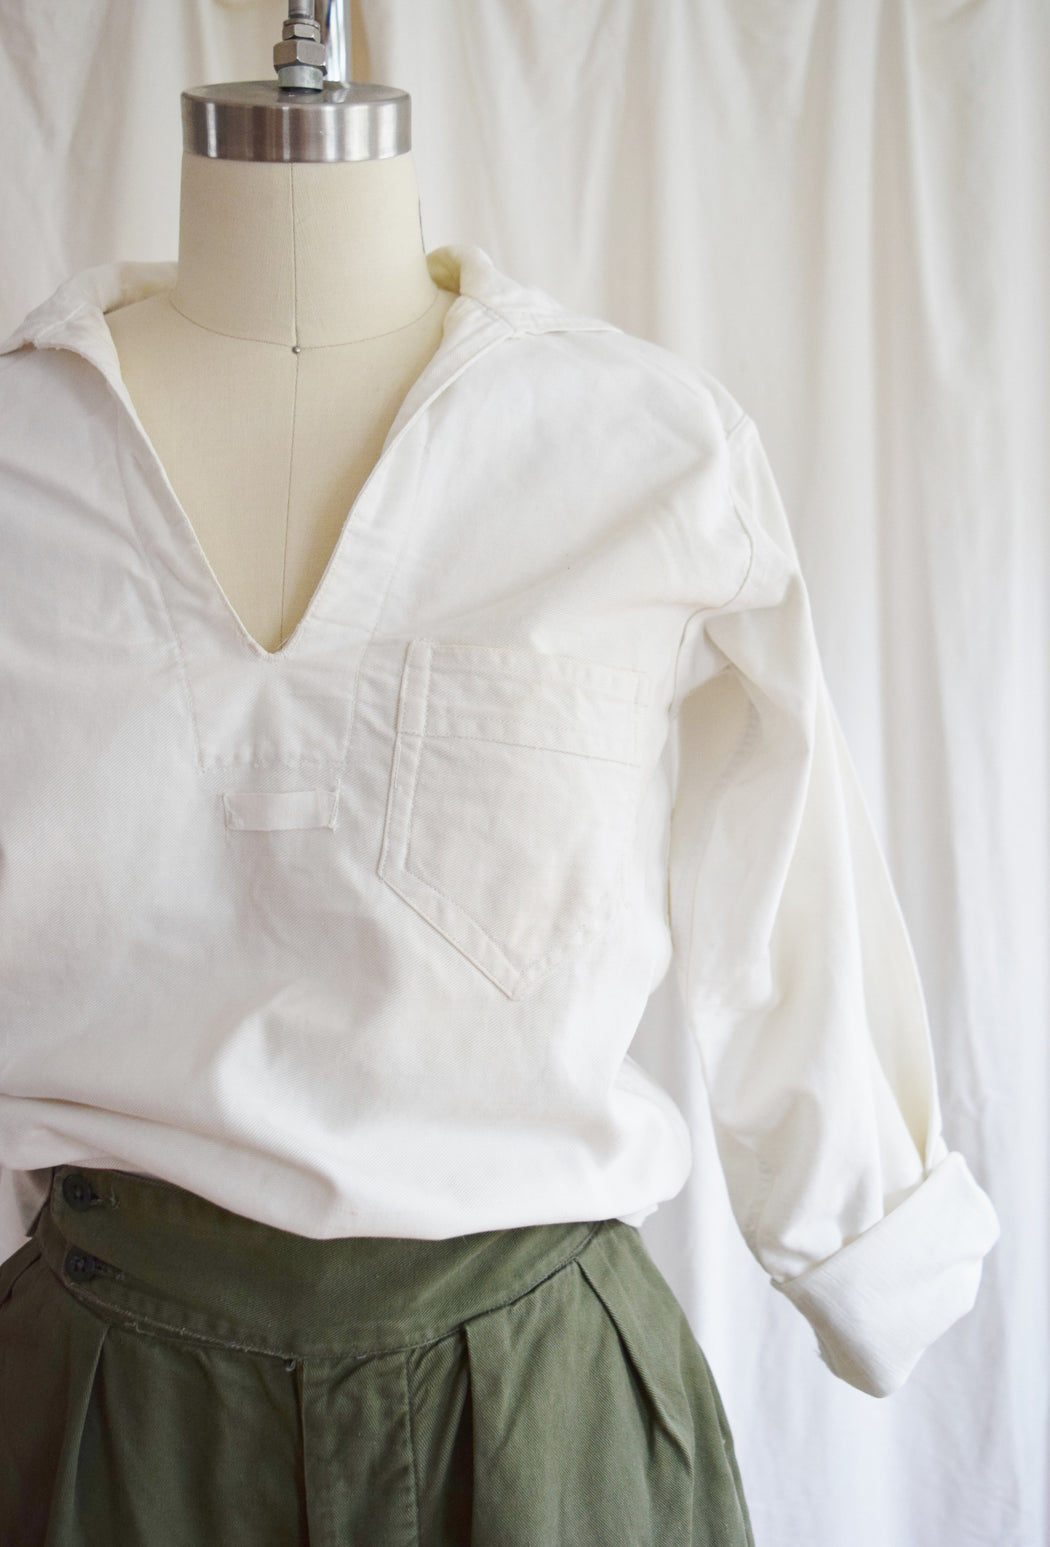 Early 20th Century Navy-Issue White Canvas Shirt